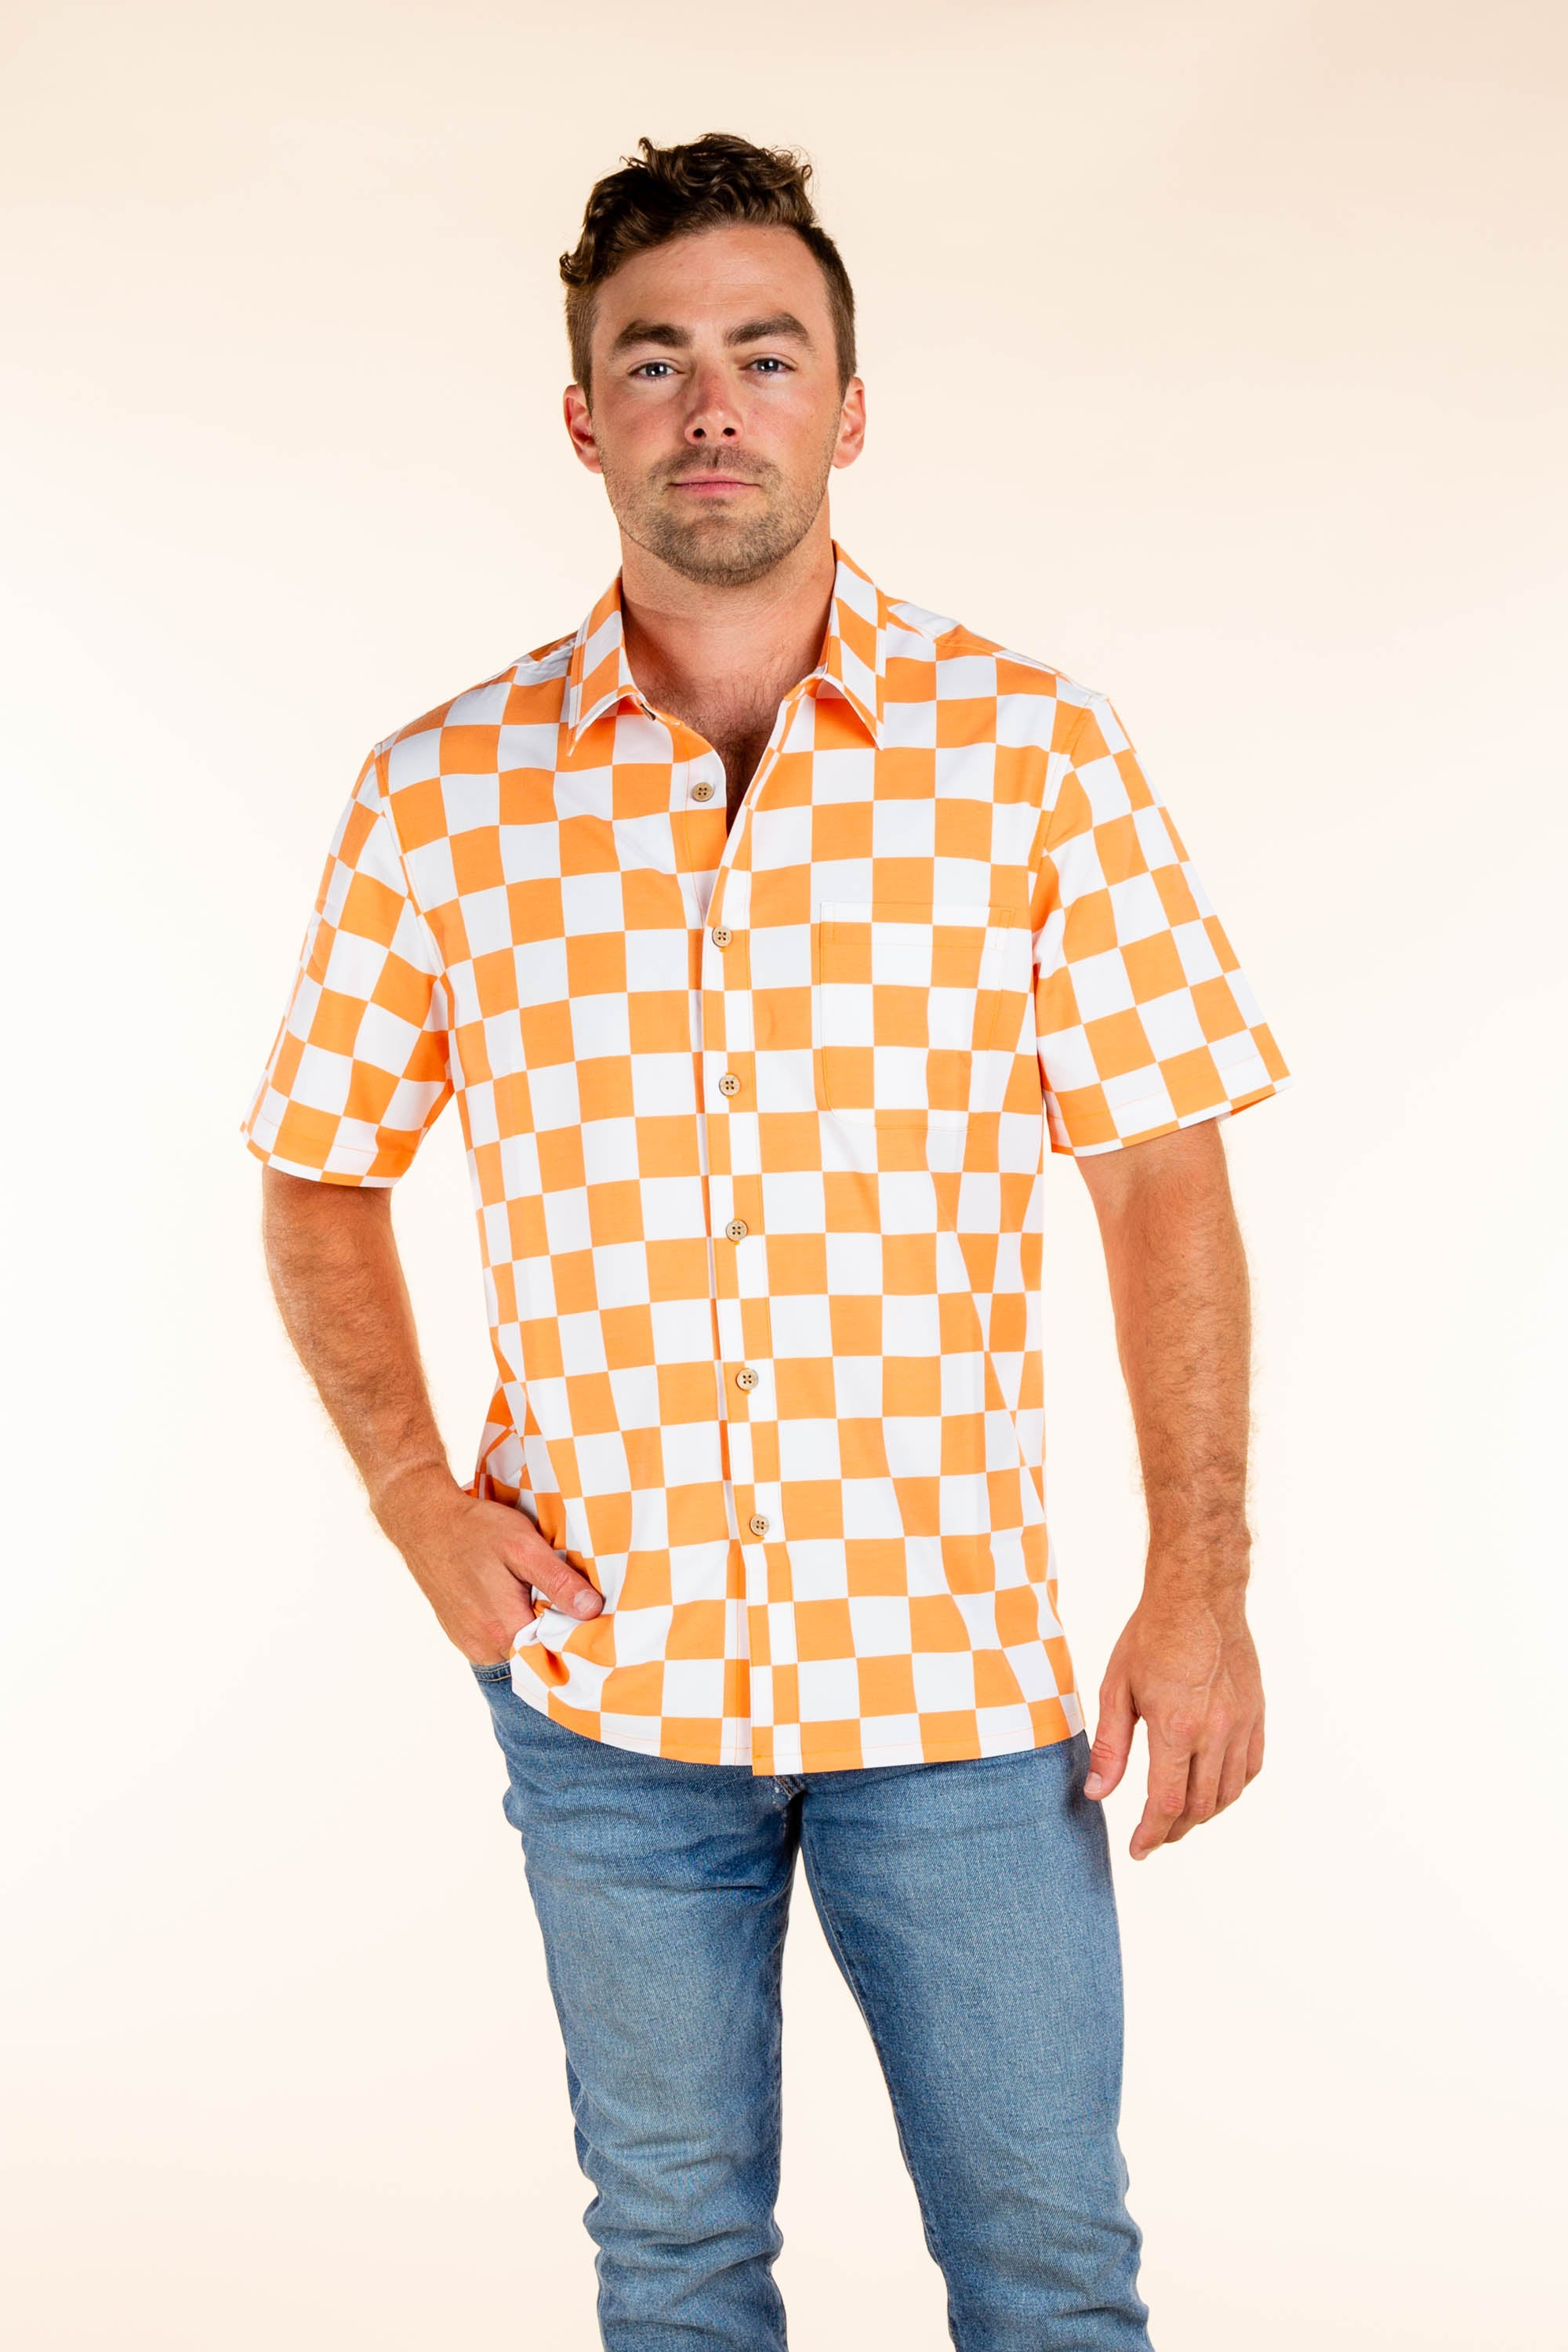 University of Tennessee Orange Checkered Tailgating Shirt